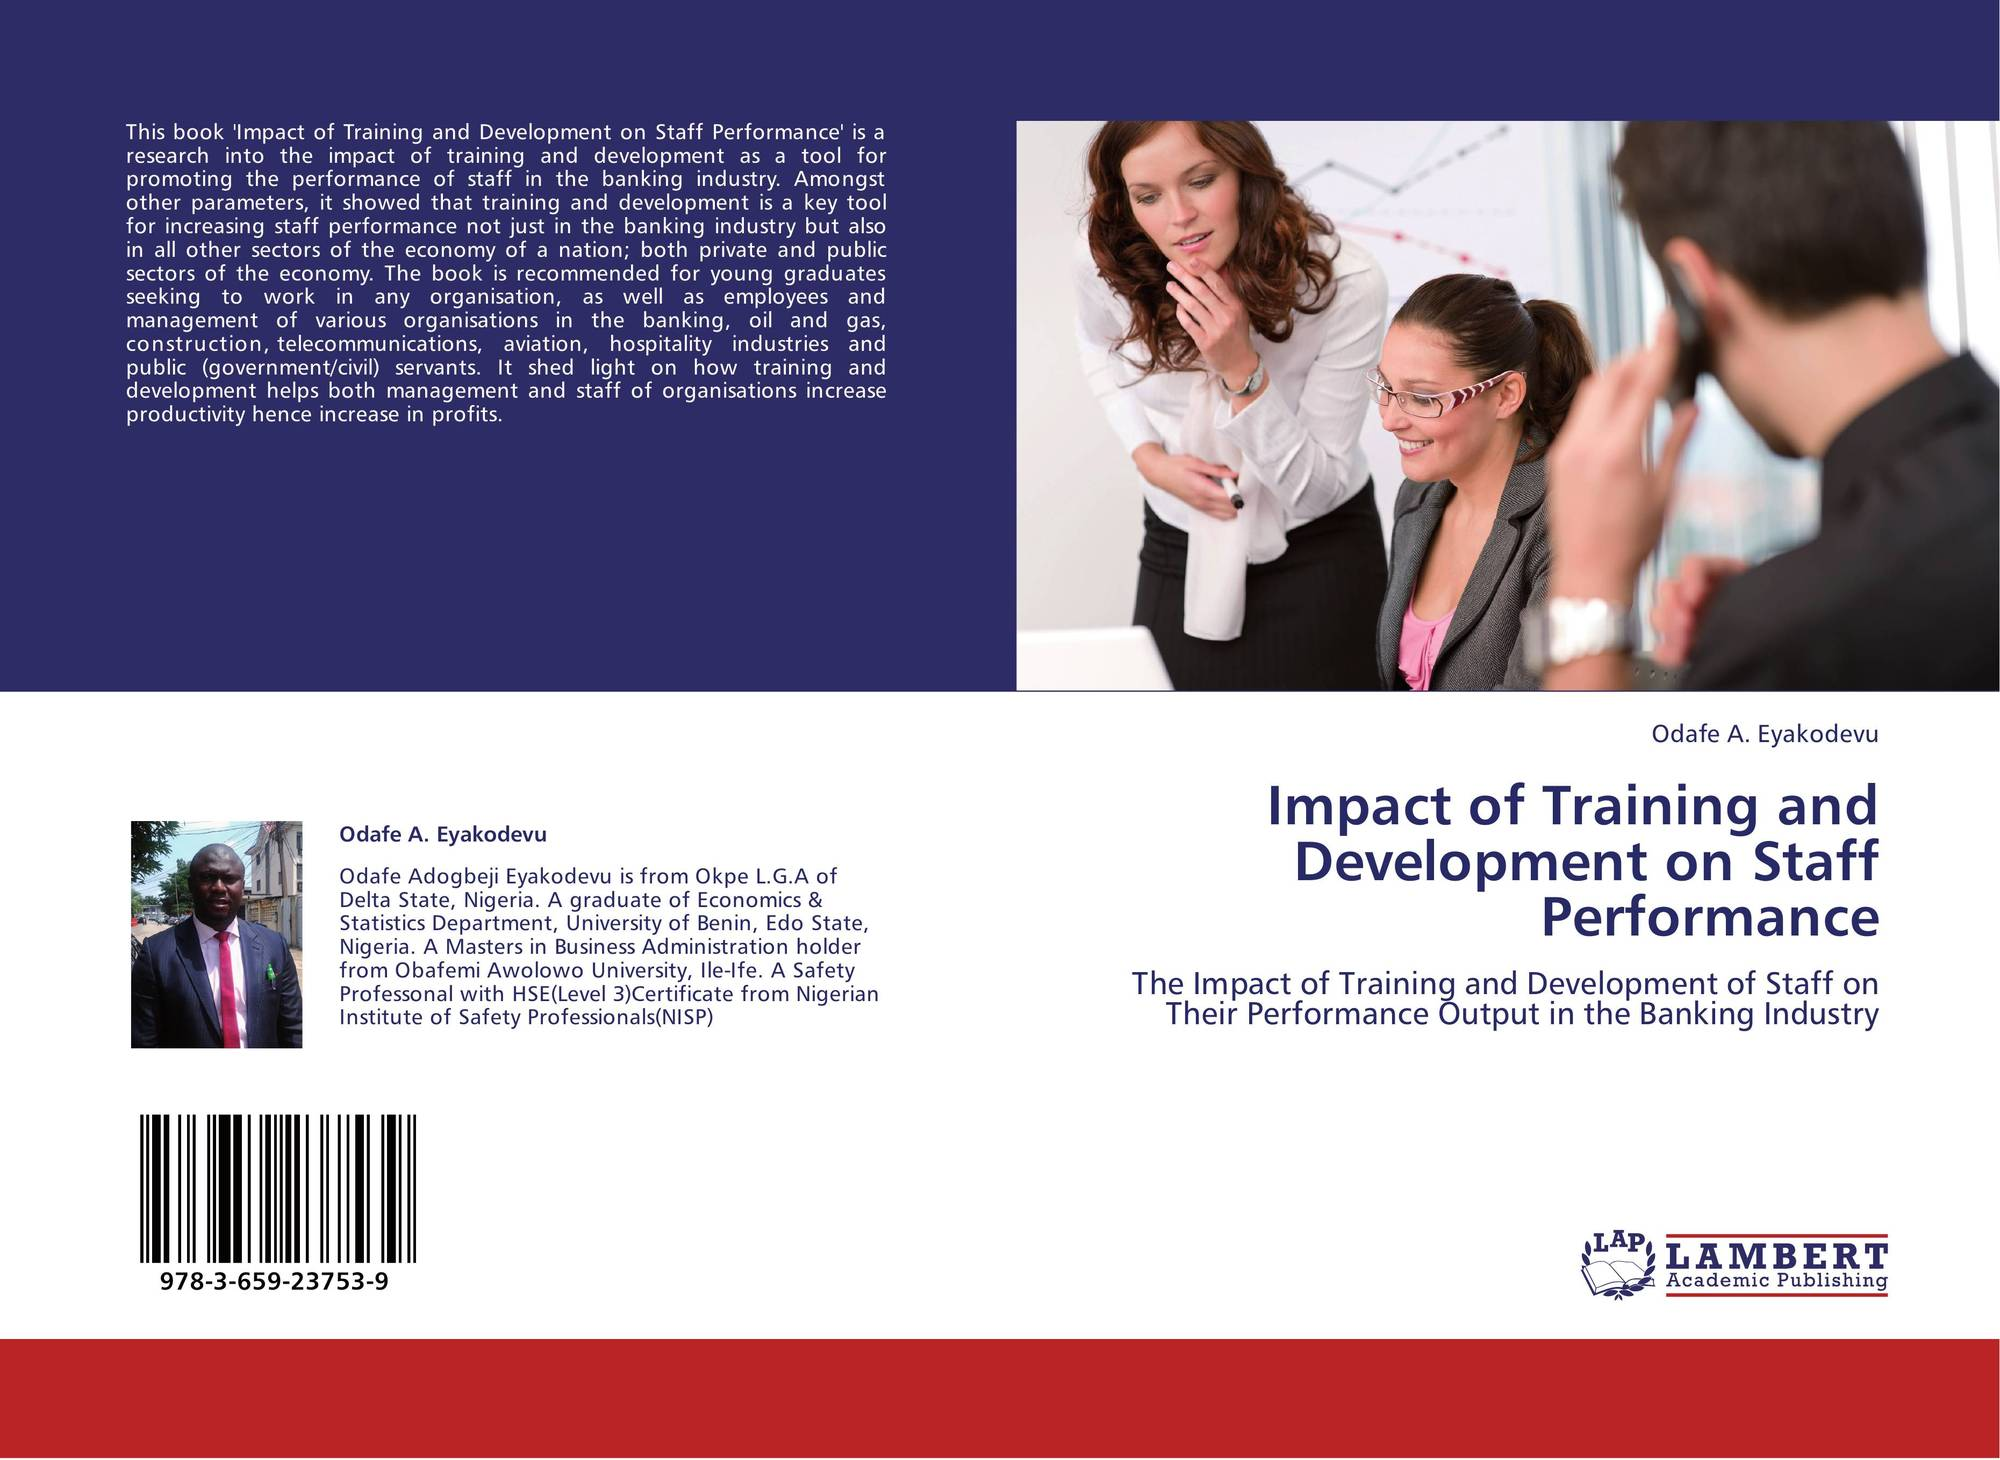 thesis on impact of training and development on employees performance In simple words it means that there is a relatively smaller impact of training and development programs on the performance of married employees 38 235 hoc: there is no impact of training and development programs on the performance of married employees.